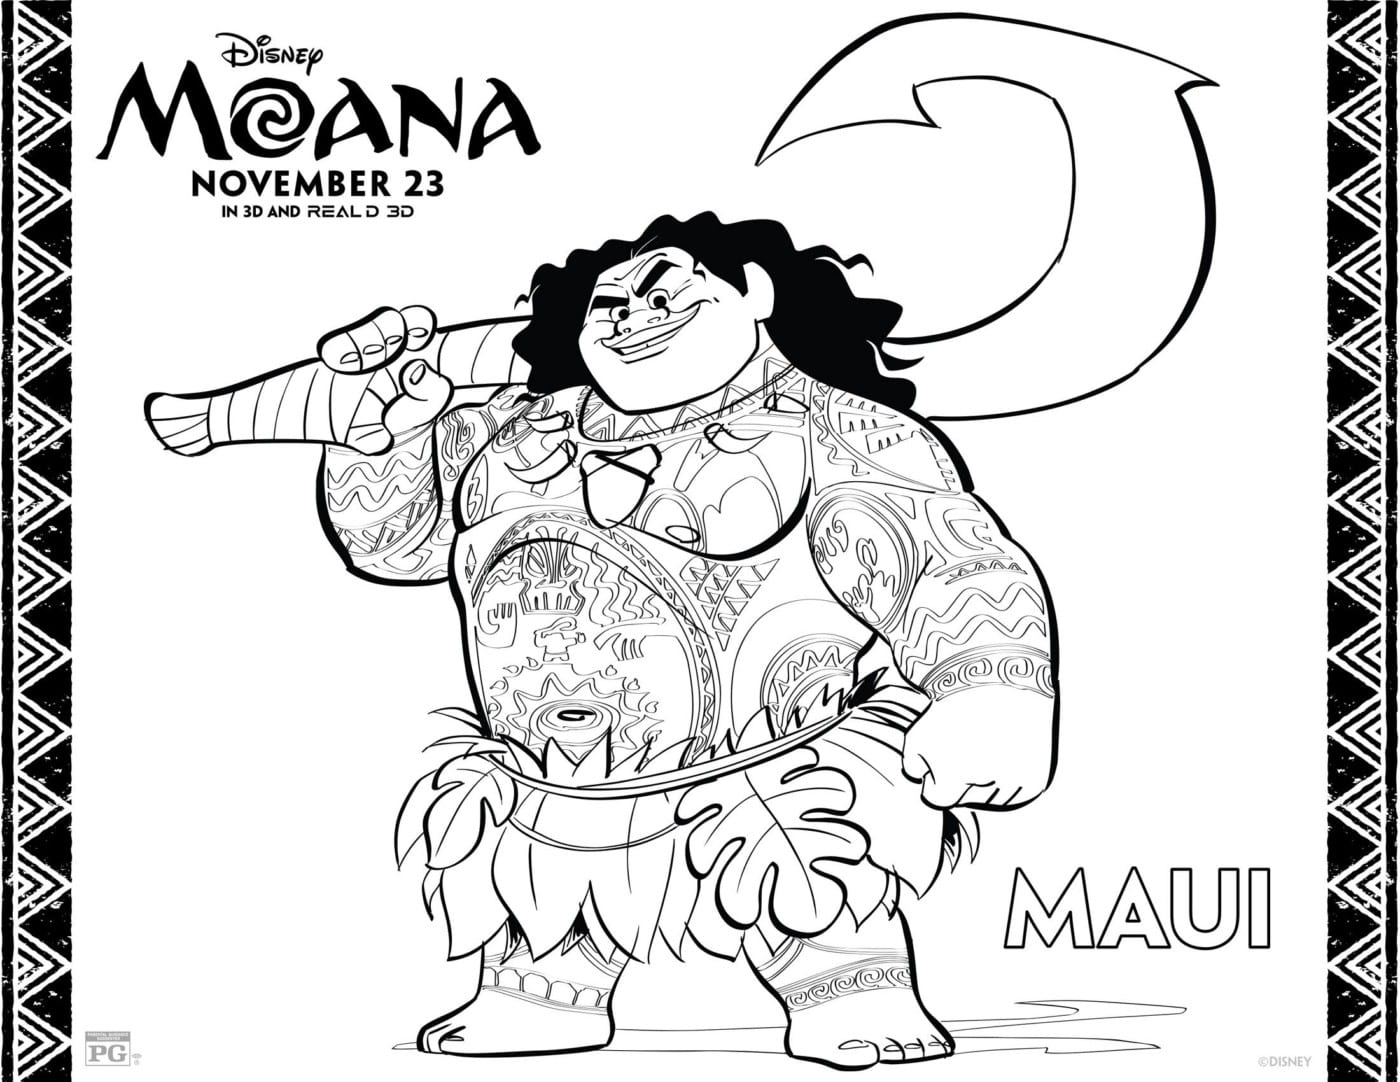 Moana Coloring Pages | Free Disney Coloring Pages | Disney Activity Page - Moana Coloring Pages Free Printable